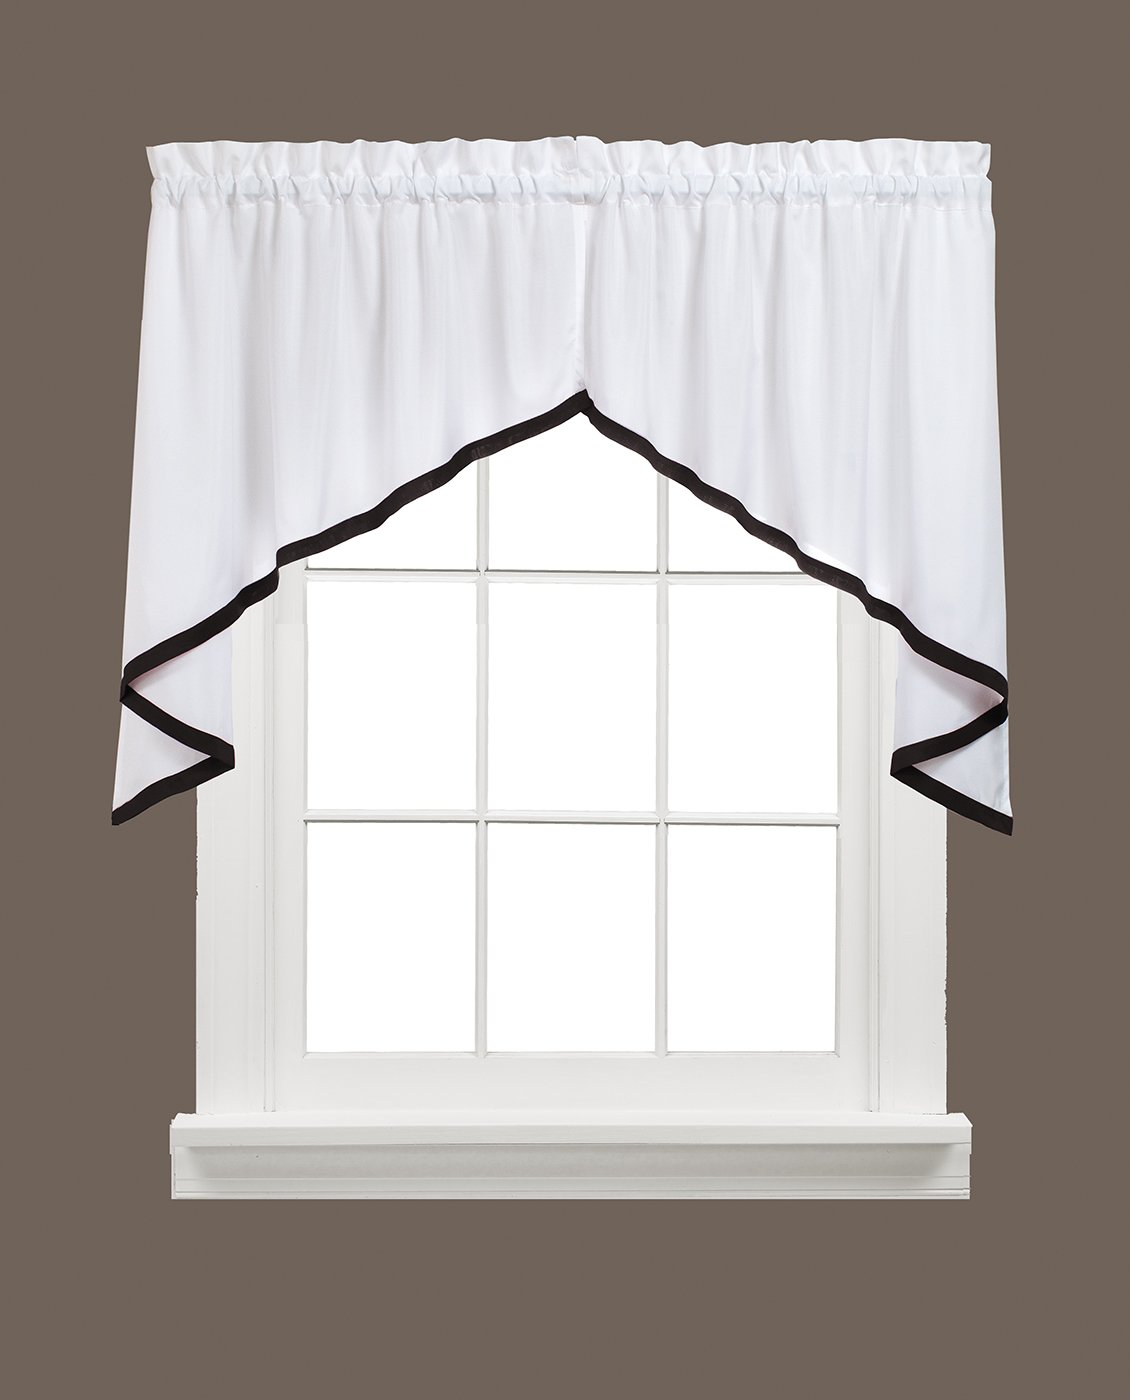 Kate Valance 58 inches x 13 inches M7007000013V09 SKL Home by Saturday Knight Ltd Black